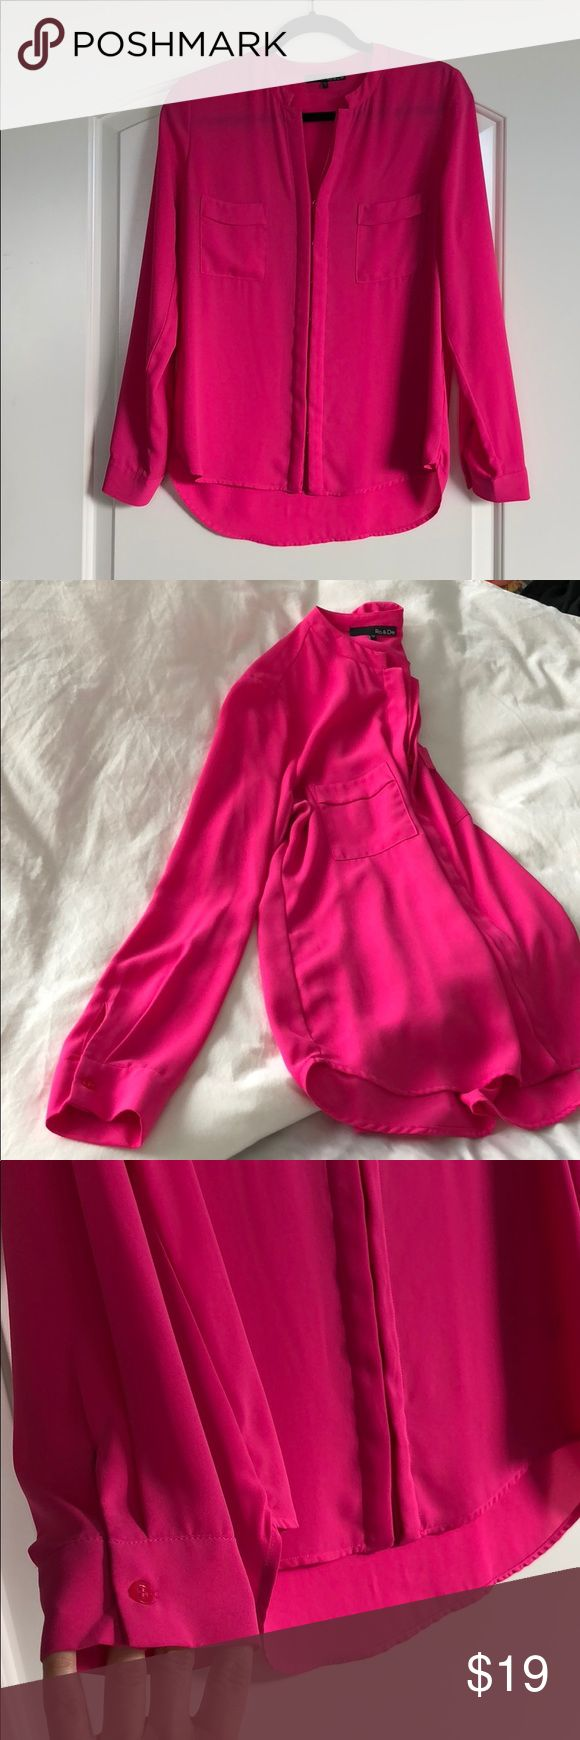 Ro & De Top Pink button up silky top. Buttons are hidden with panel of fabric on either side. Good condition. Color is brighter than in pictures. From Nord Rack *add to a bundle for a private offer!* Ro & De Tops Button Down Shirts